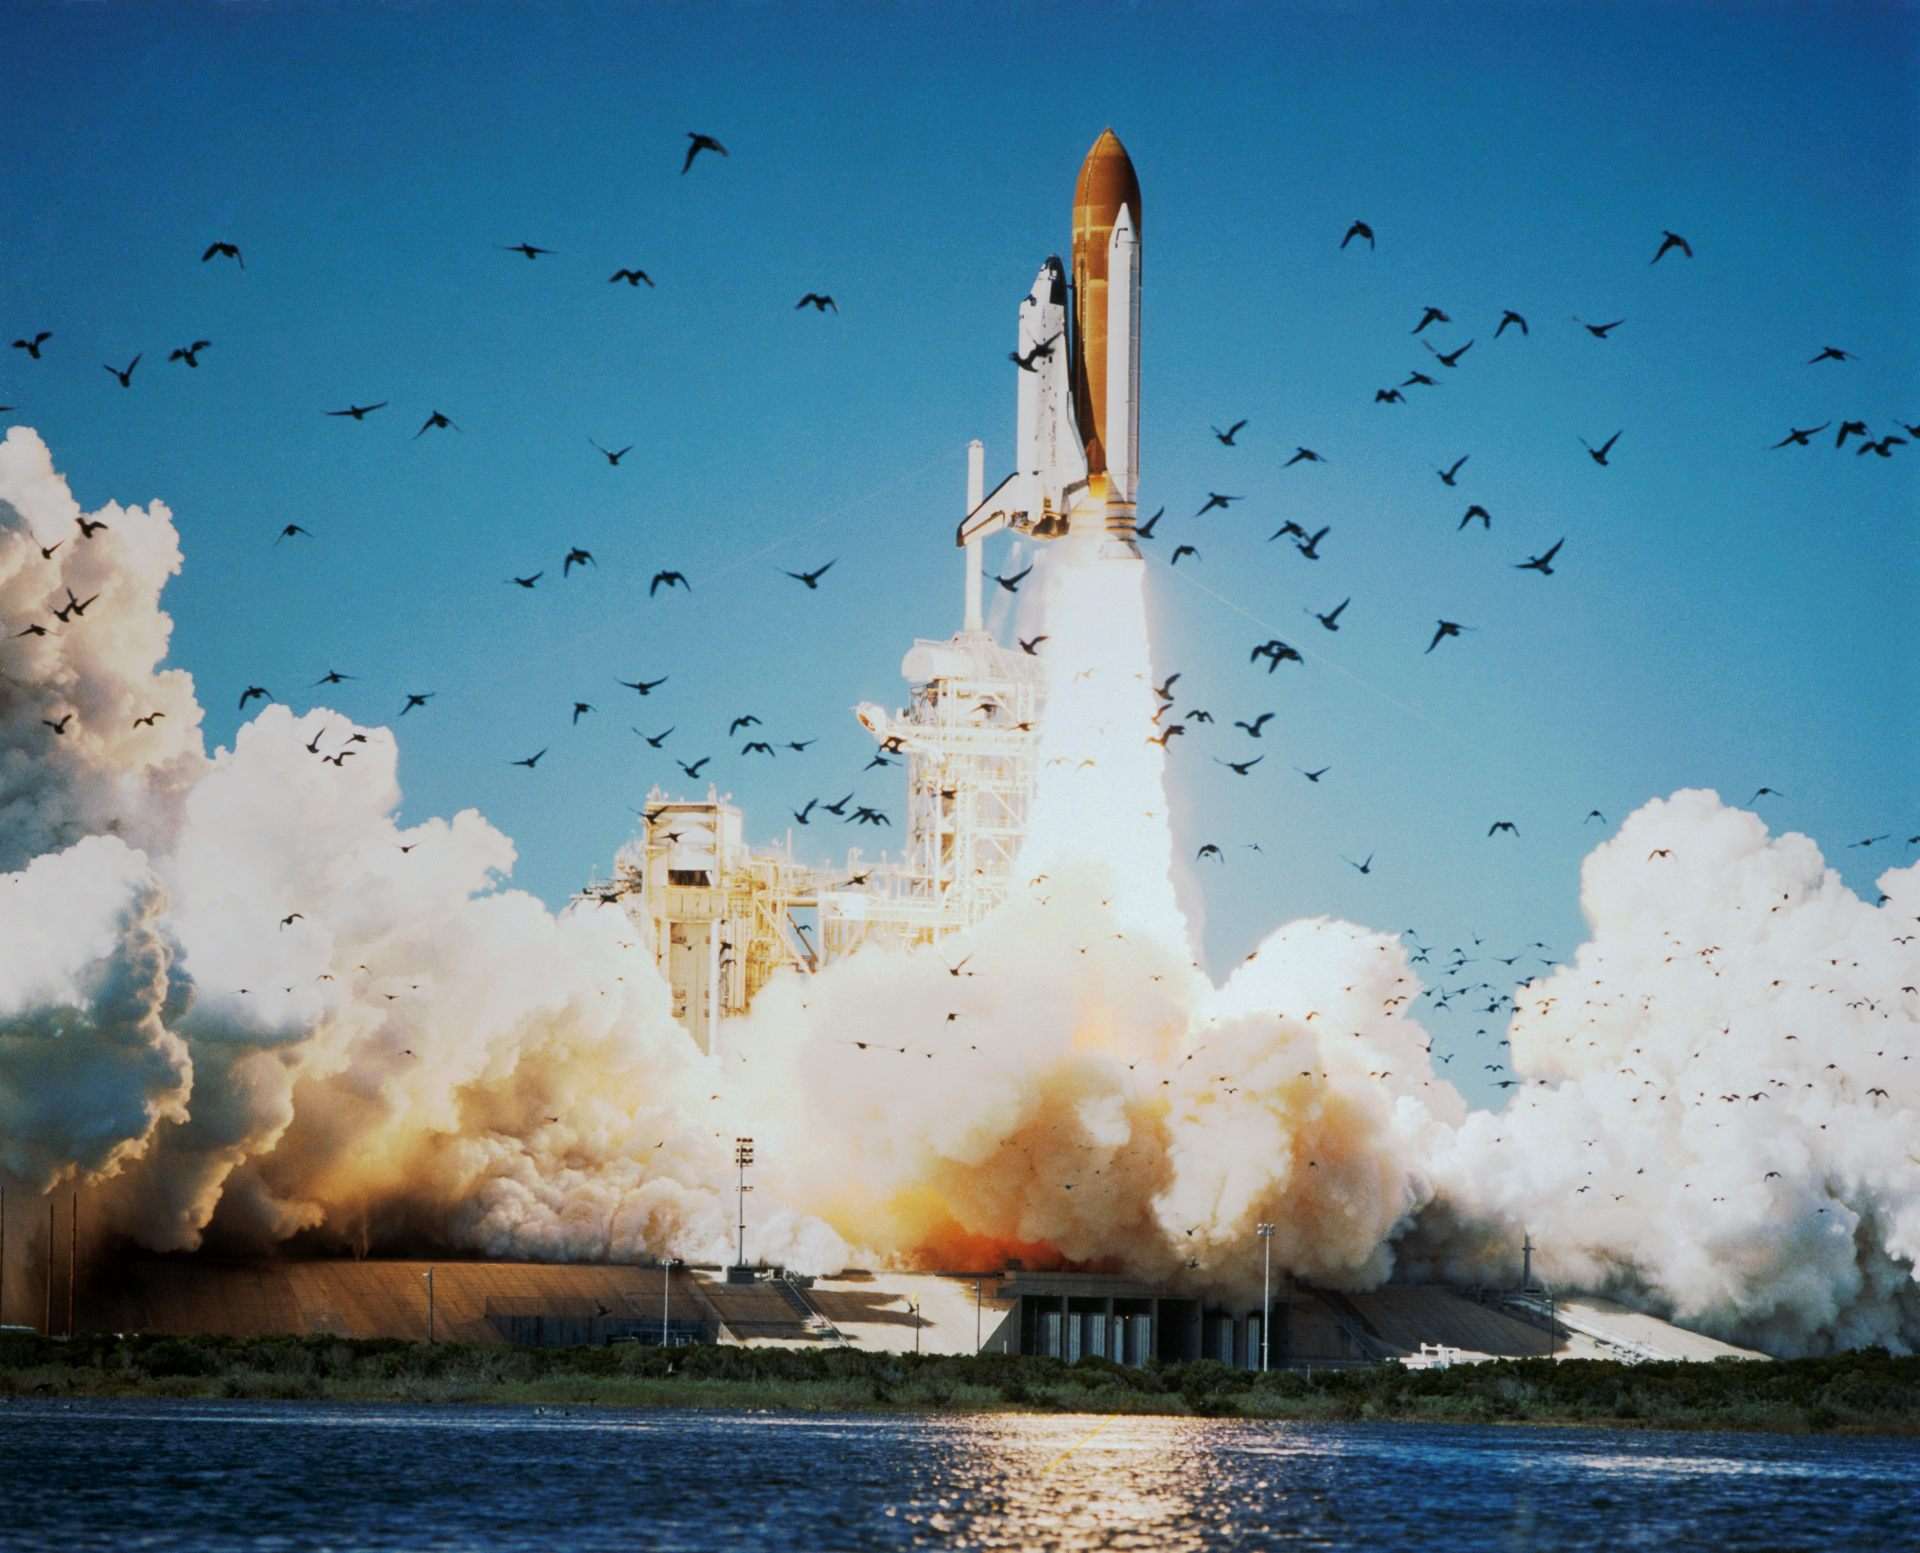 Décollage de la navette Challenger - Kennedy Space Center - 28 janvier 1986 - NASA - STS-51L